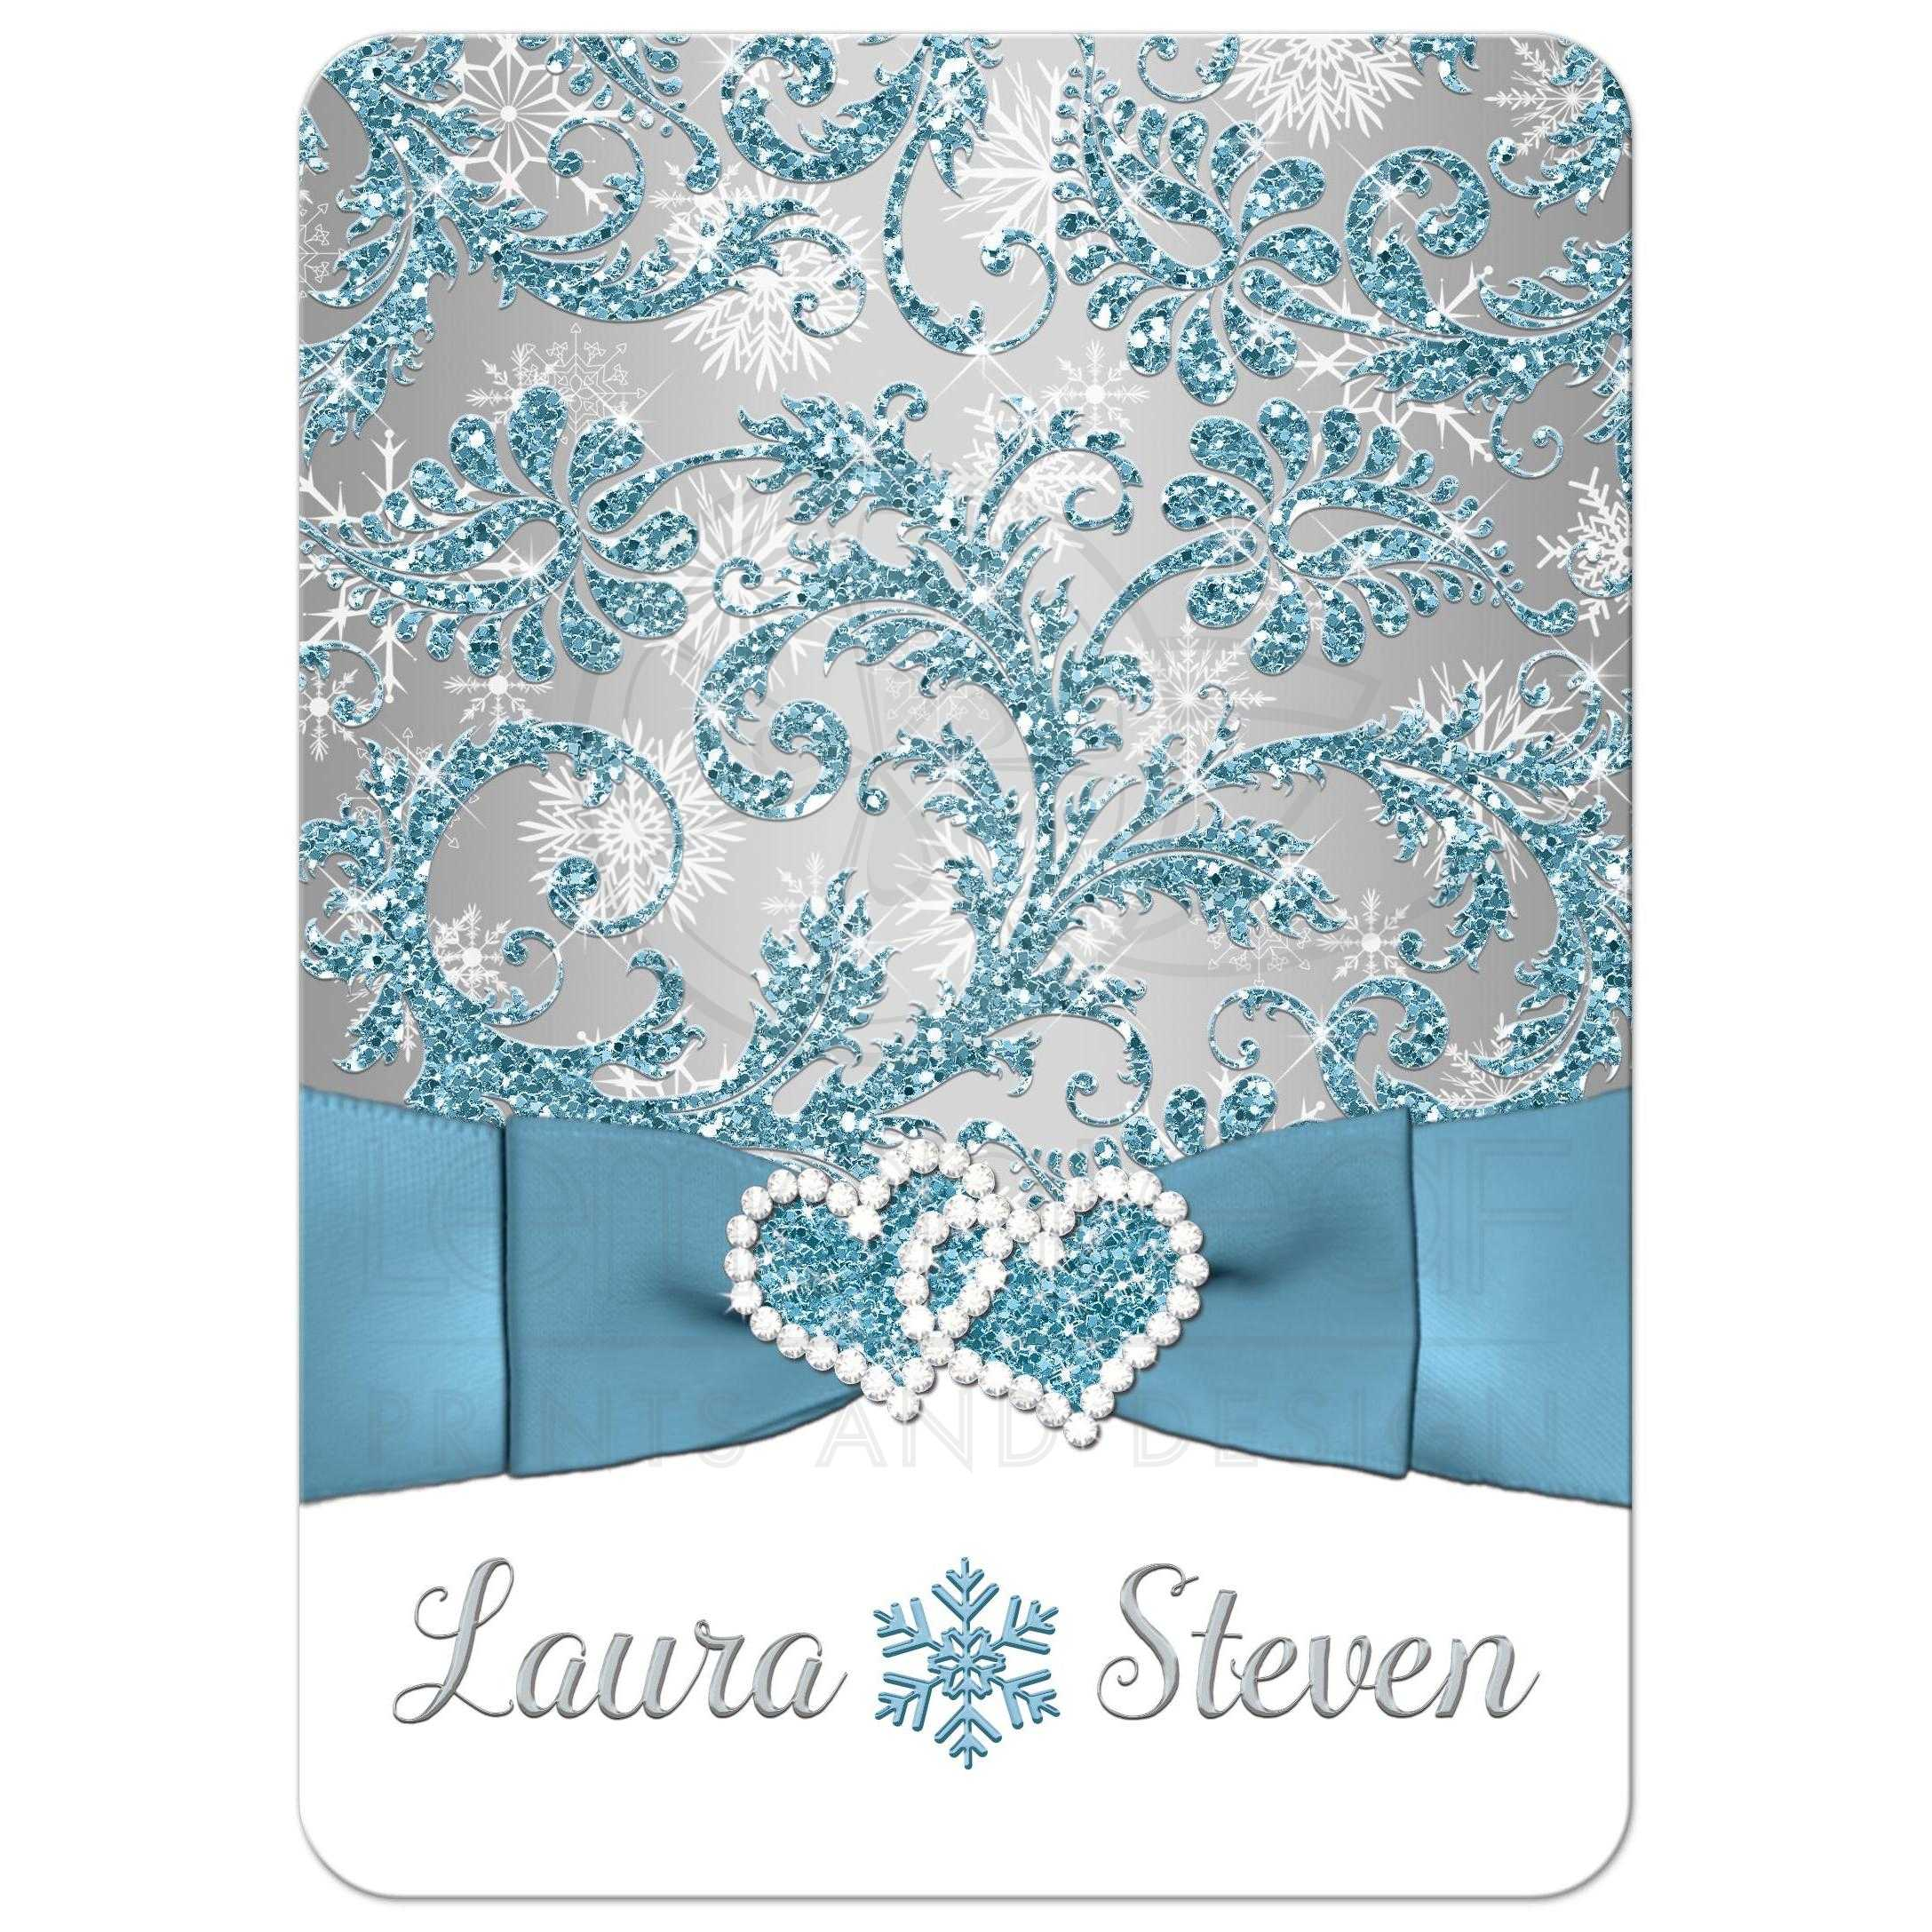 ... Winter Wonderland Wedding Invitation In Ice Blue, Silver, And White  Snowflakes ...